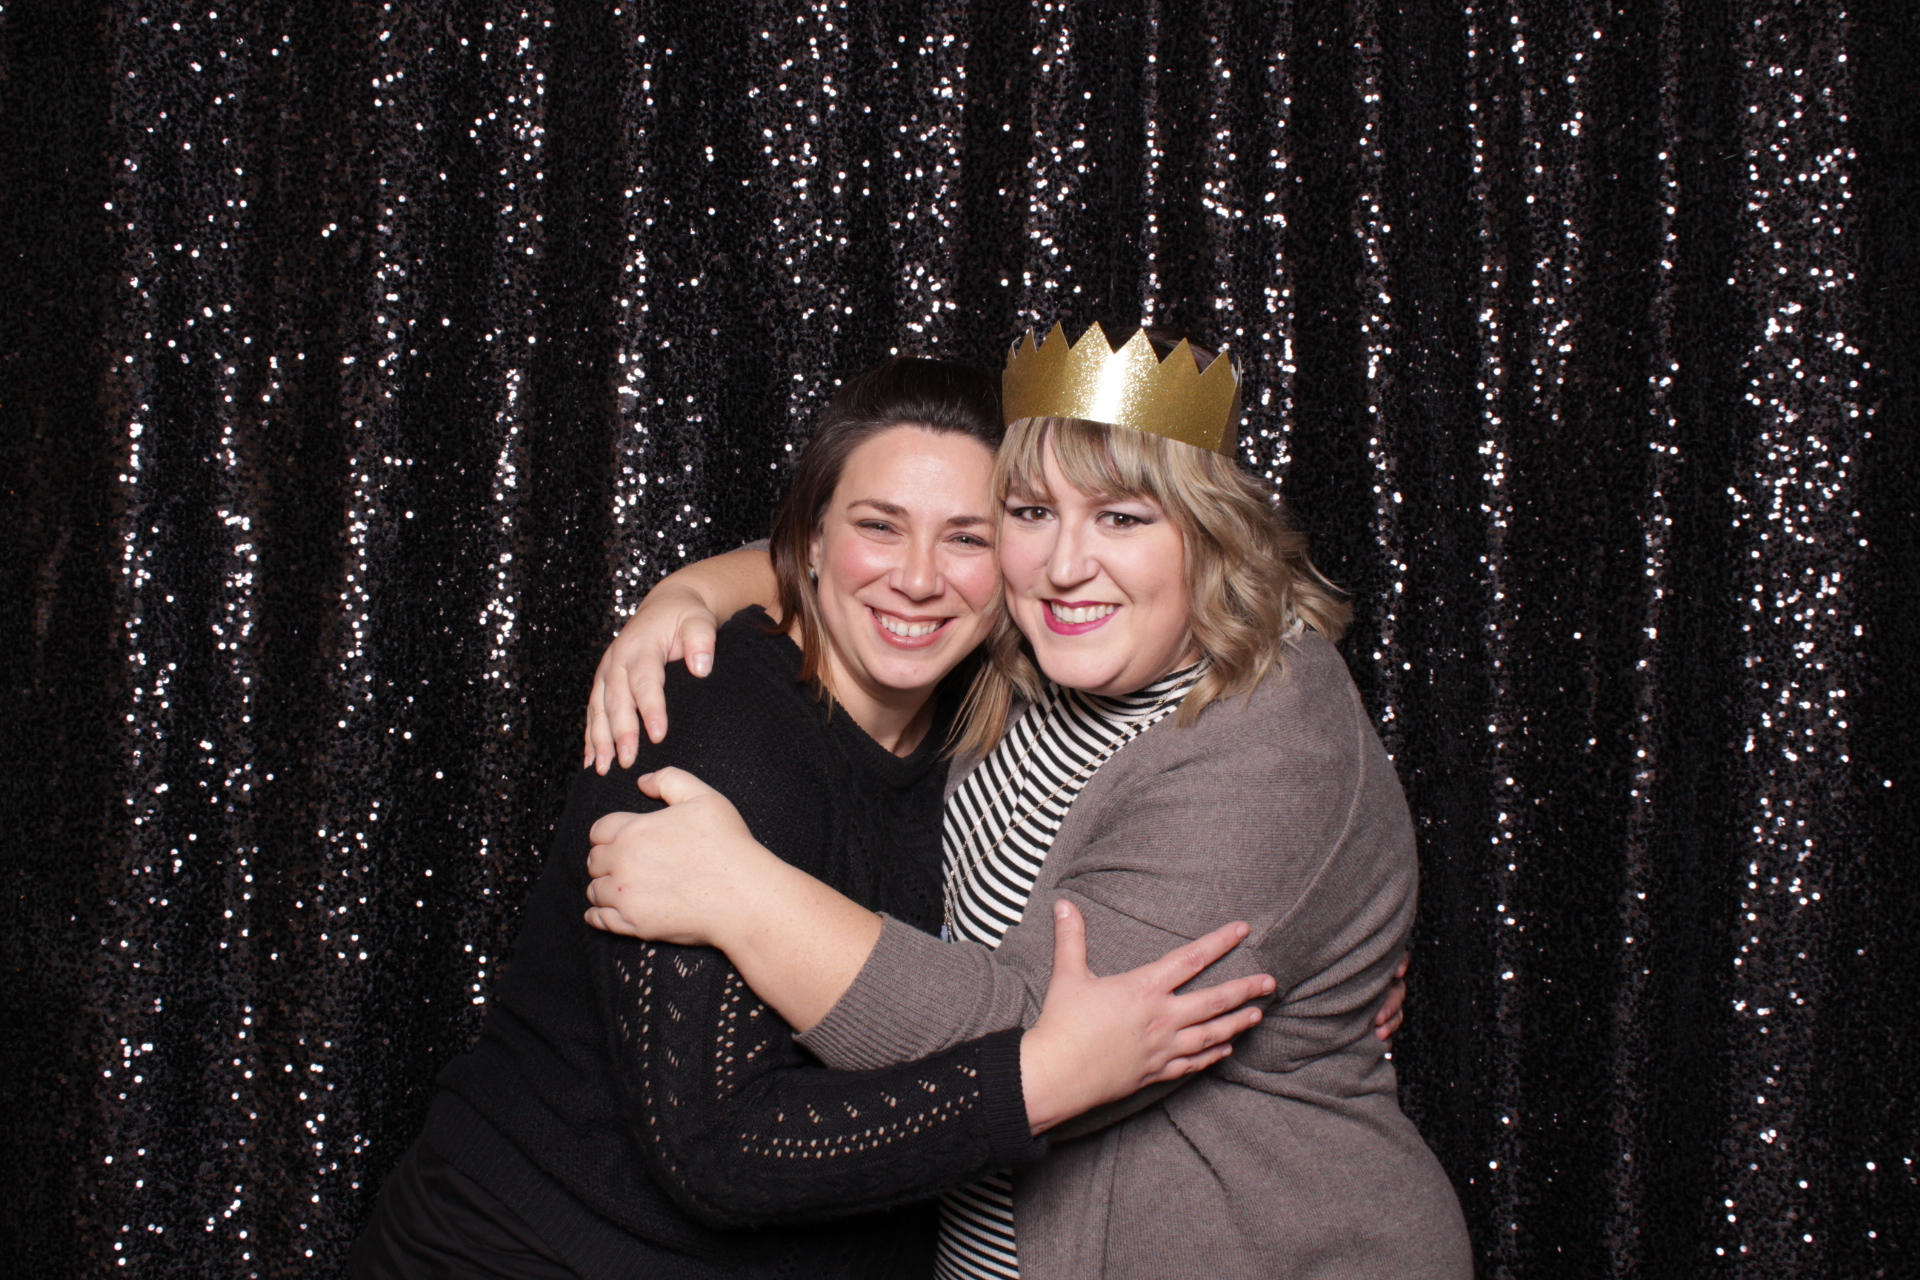 Minneapolis_birthday_party_photo_booth_rentals (2).jpg